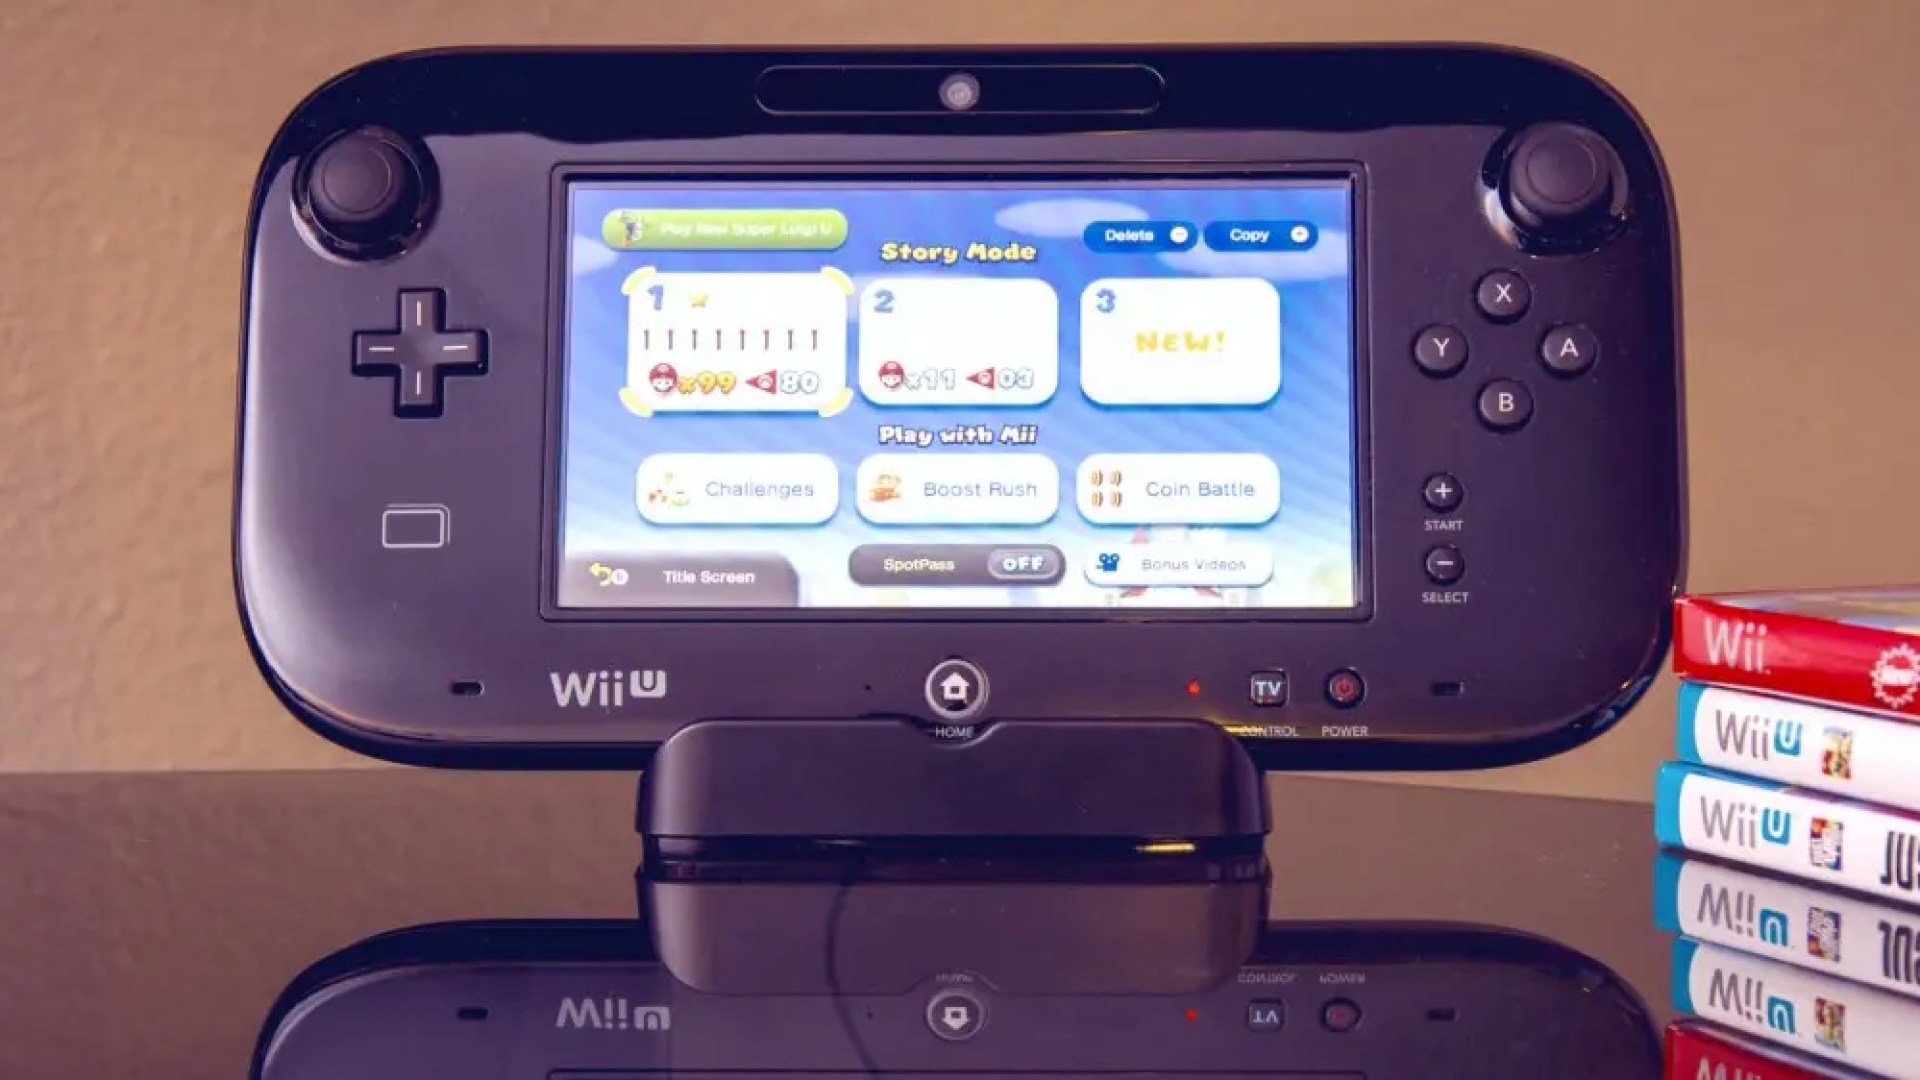 Wii U gaming console on shiny table with Wii U games next to it